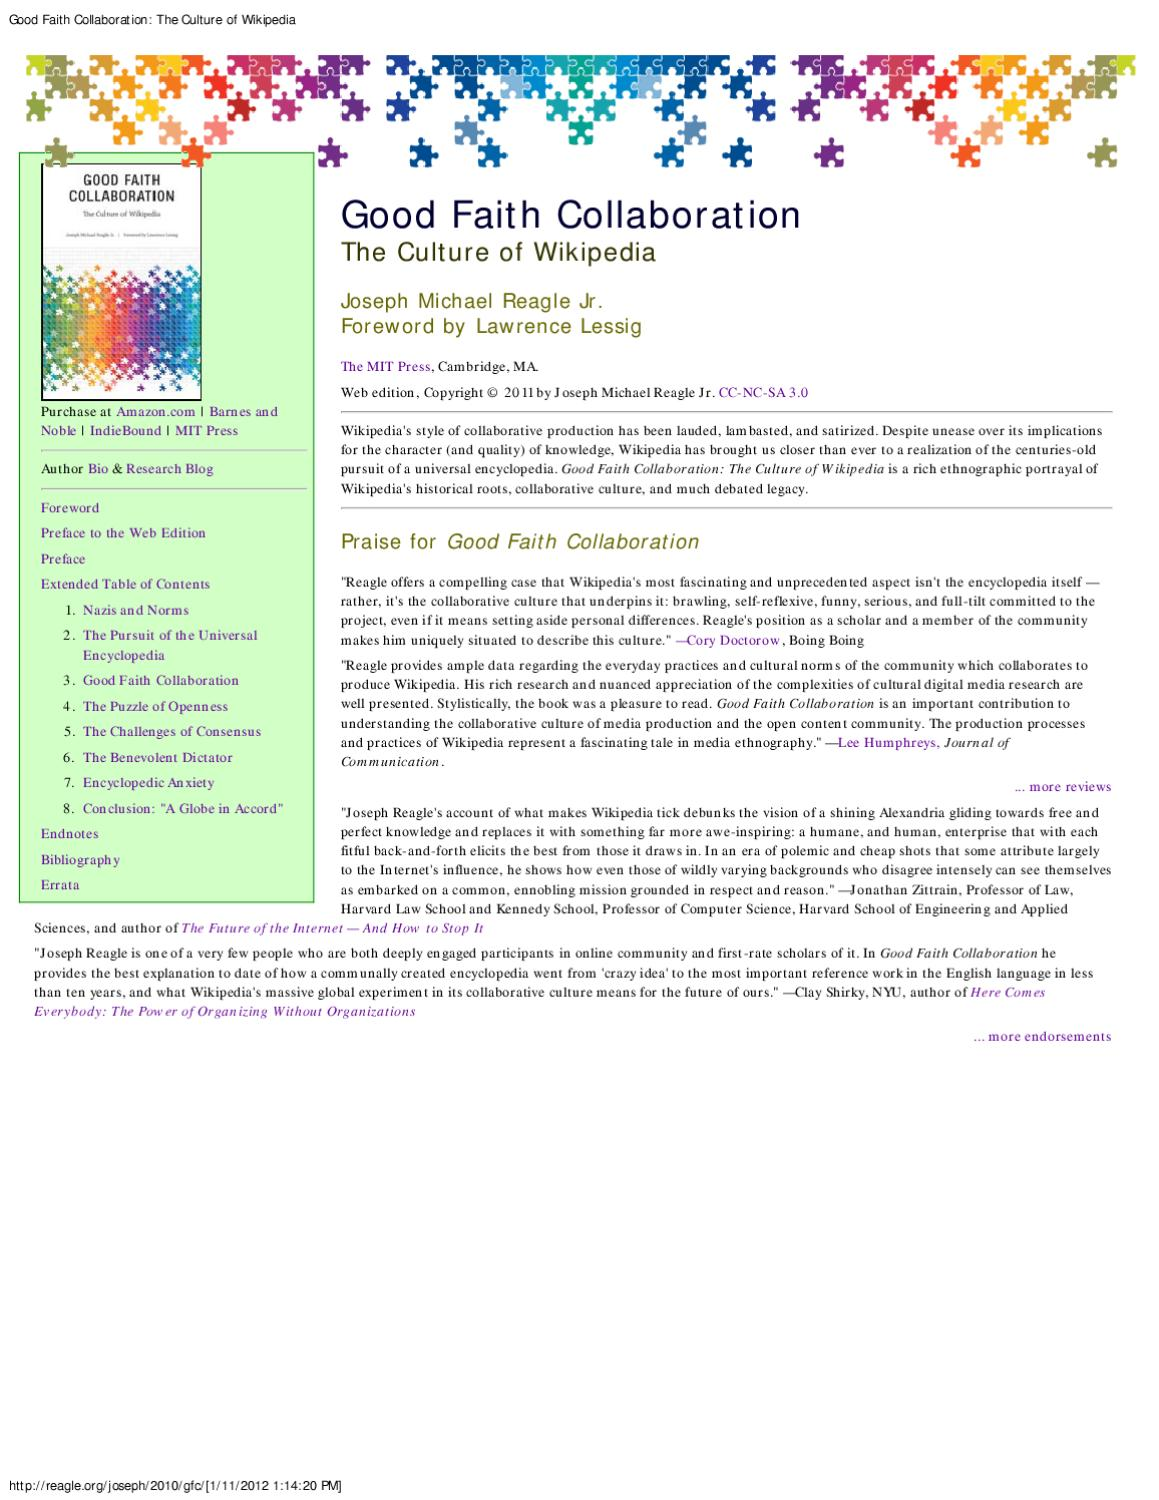 Good faith collaboration: the culture of Wikipedia by Northeastern ...